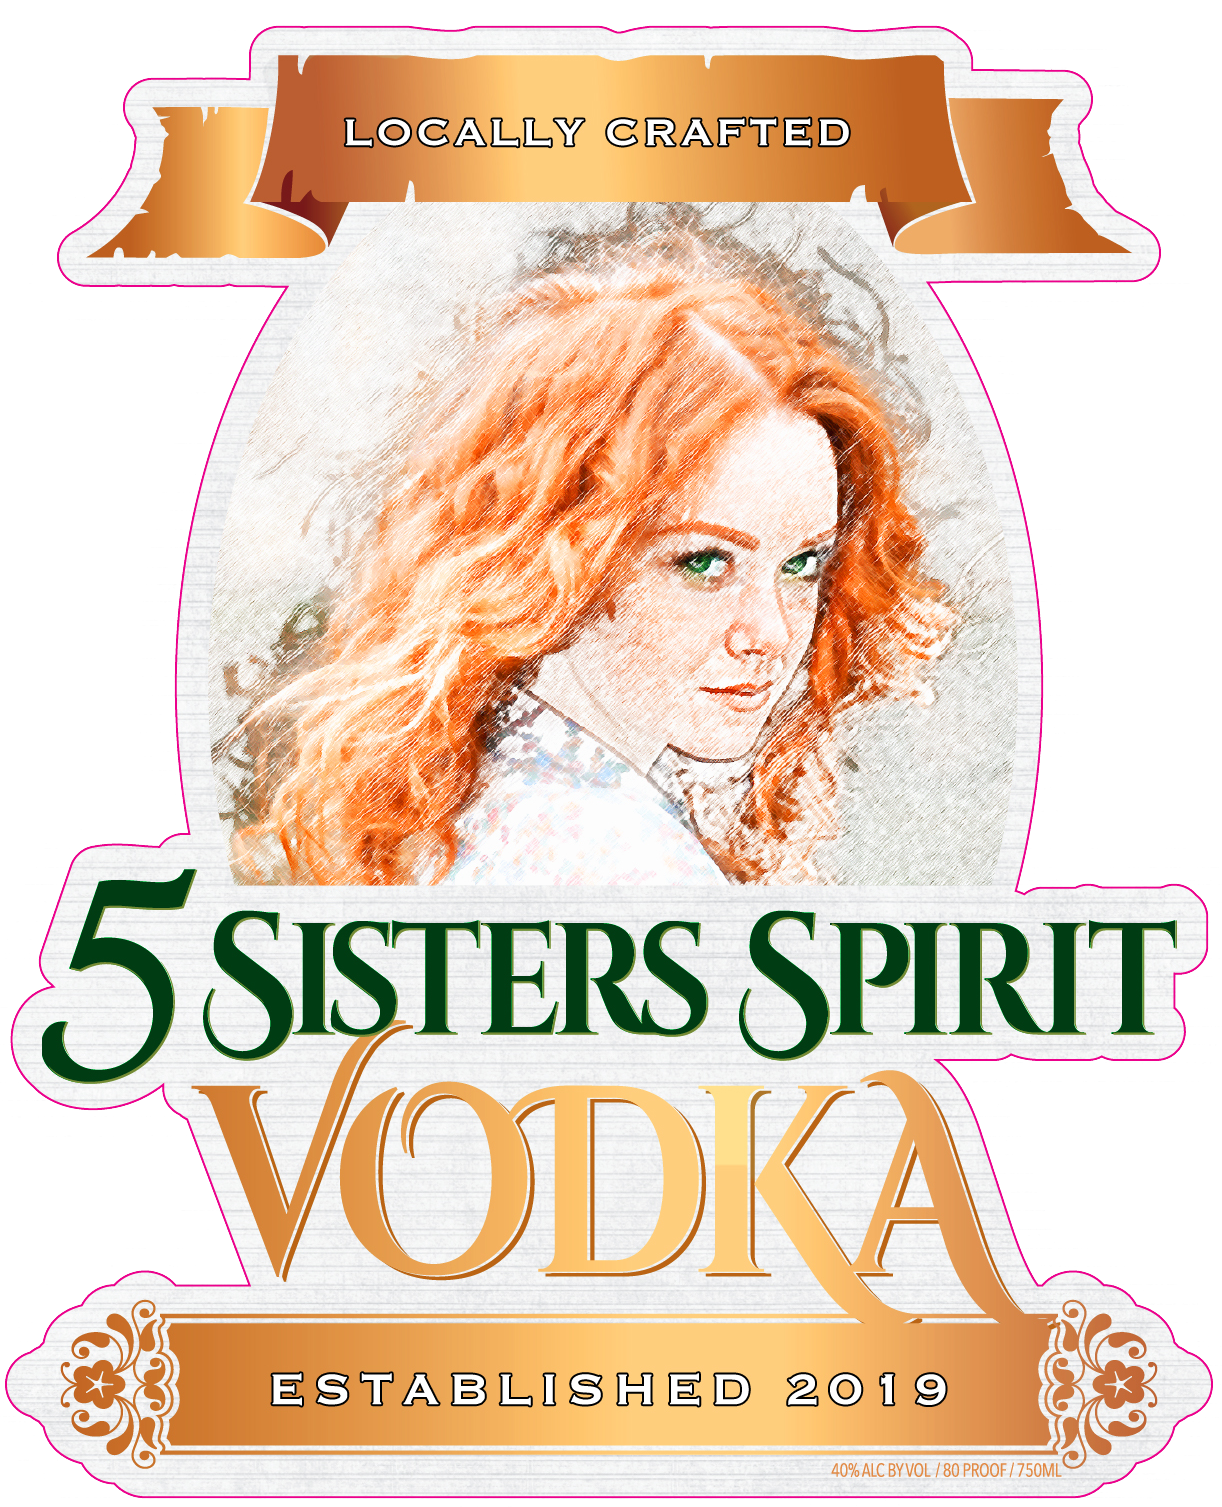 5 Sister's Vodka logo